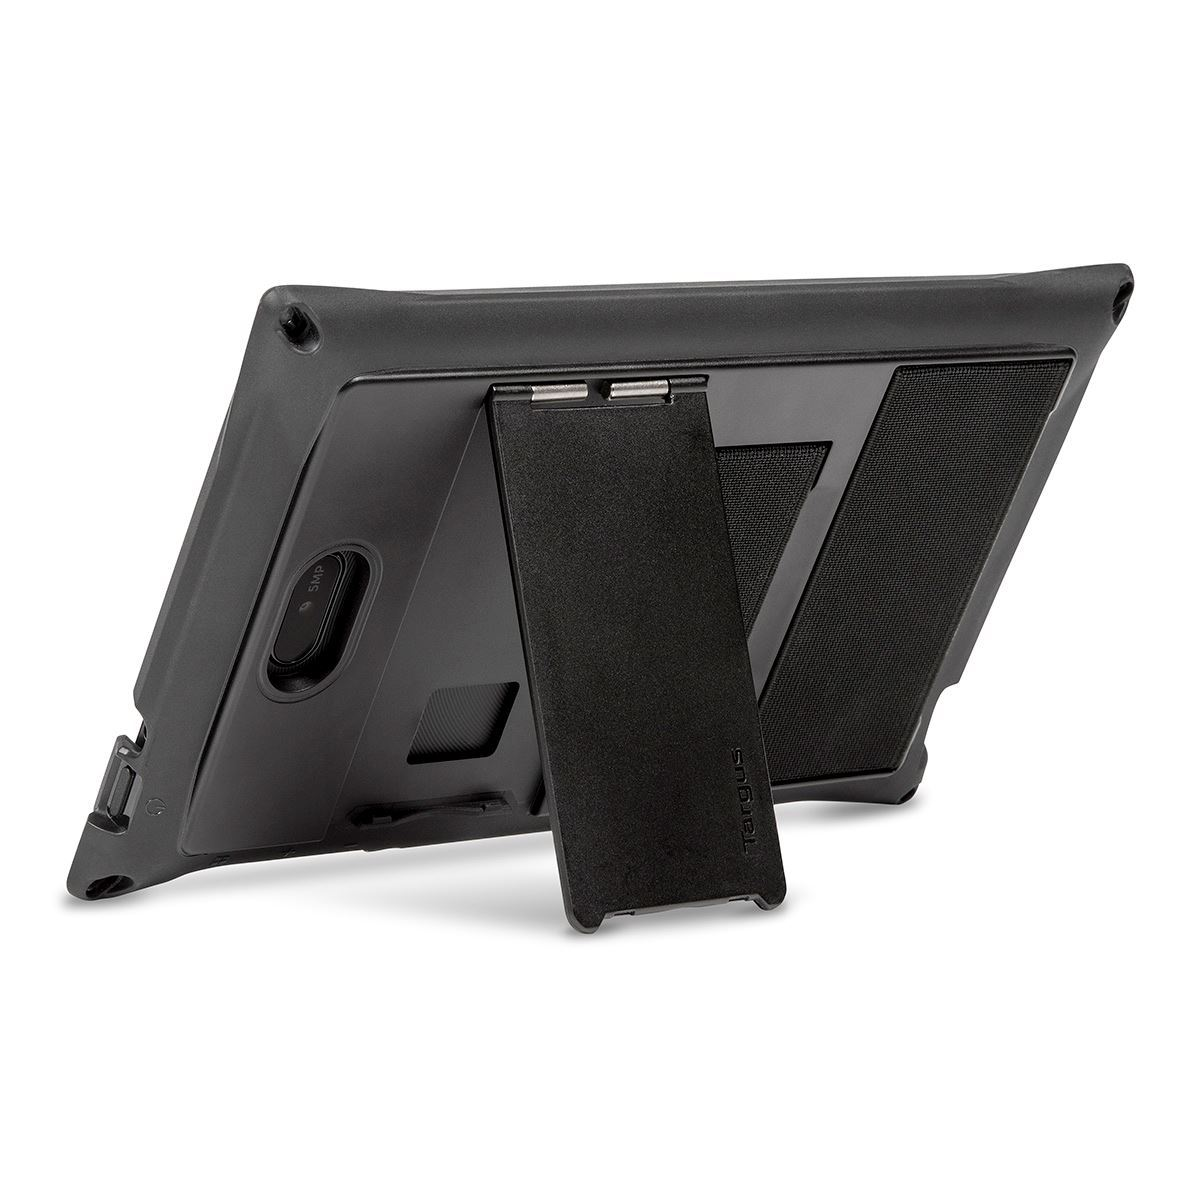 Field-Ready Tablet Case for Dell Venue Pro 8